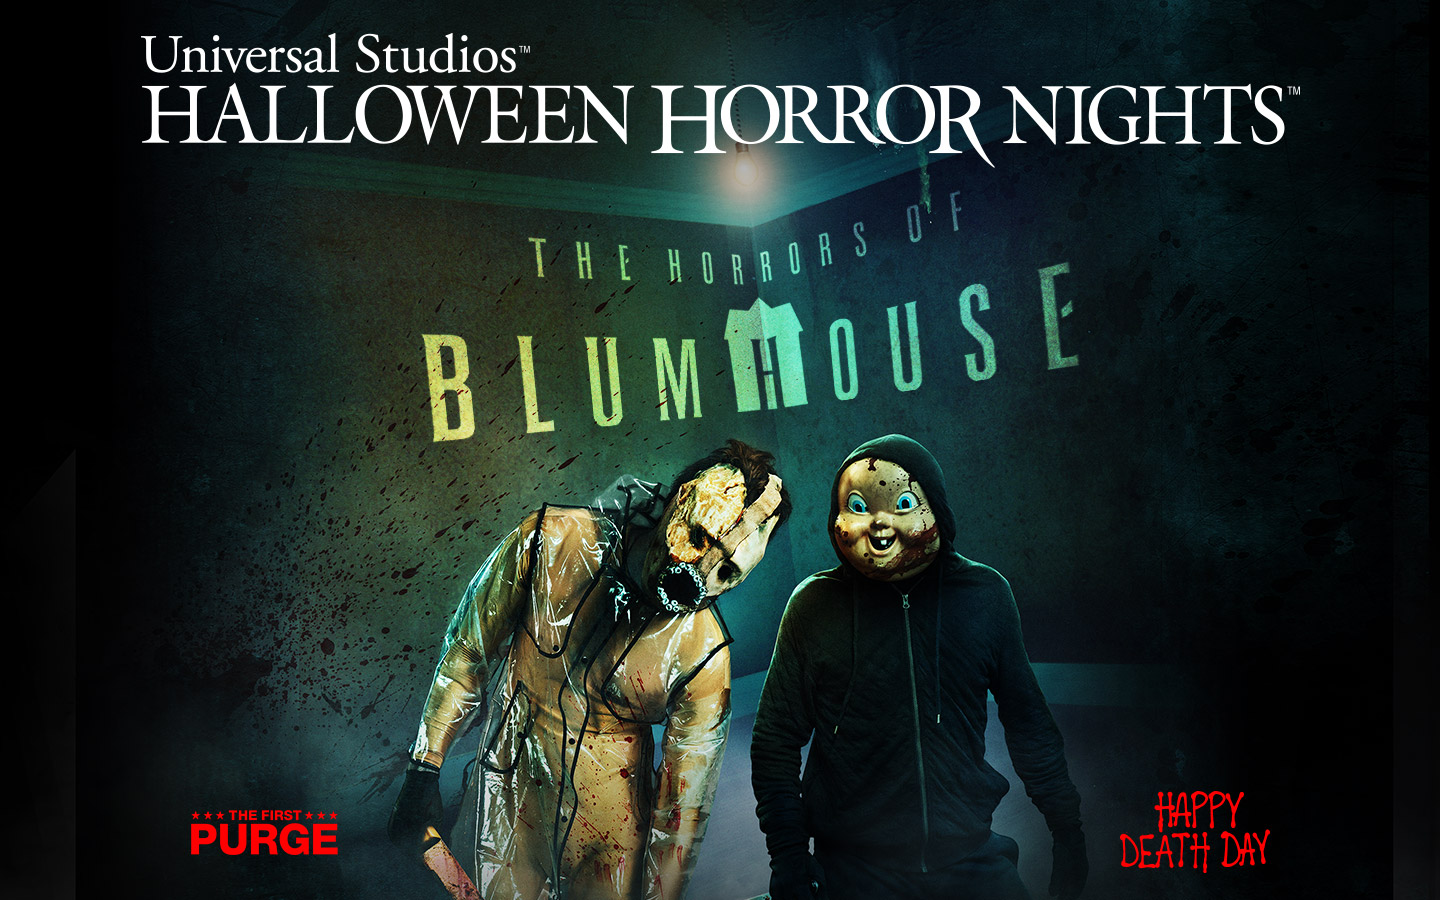 The Horrors of Blumhouse is one of many terrifying experiences at Universal Studios' Halloween Horror Nights.